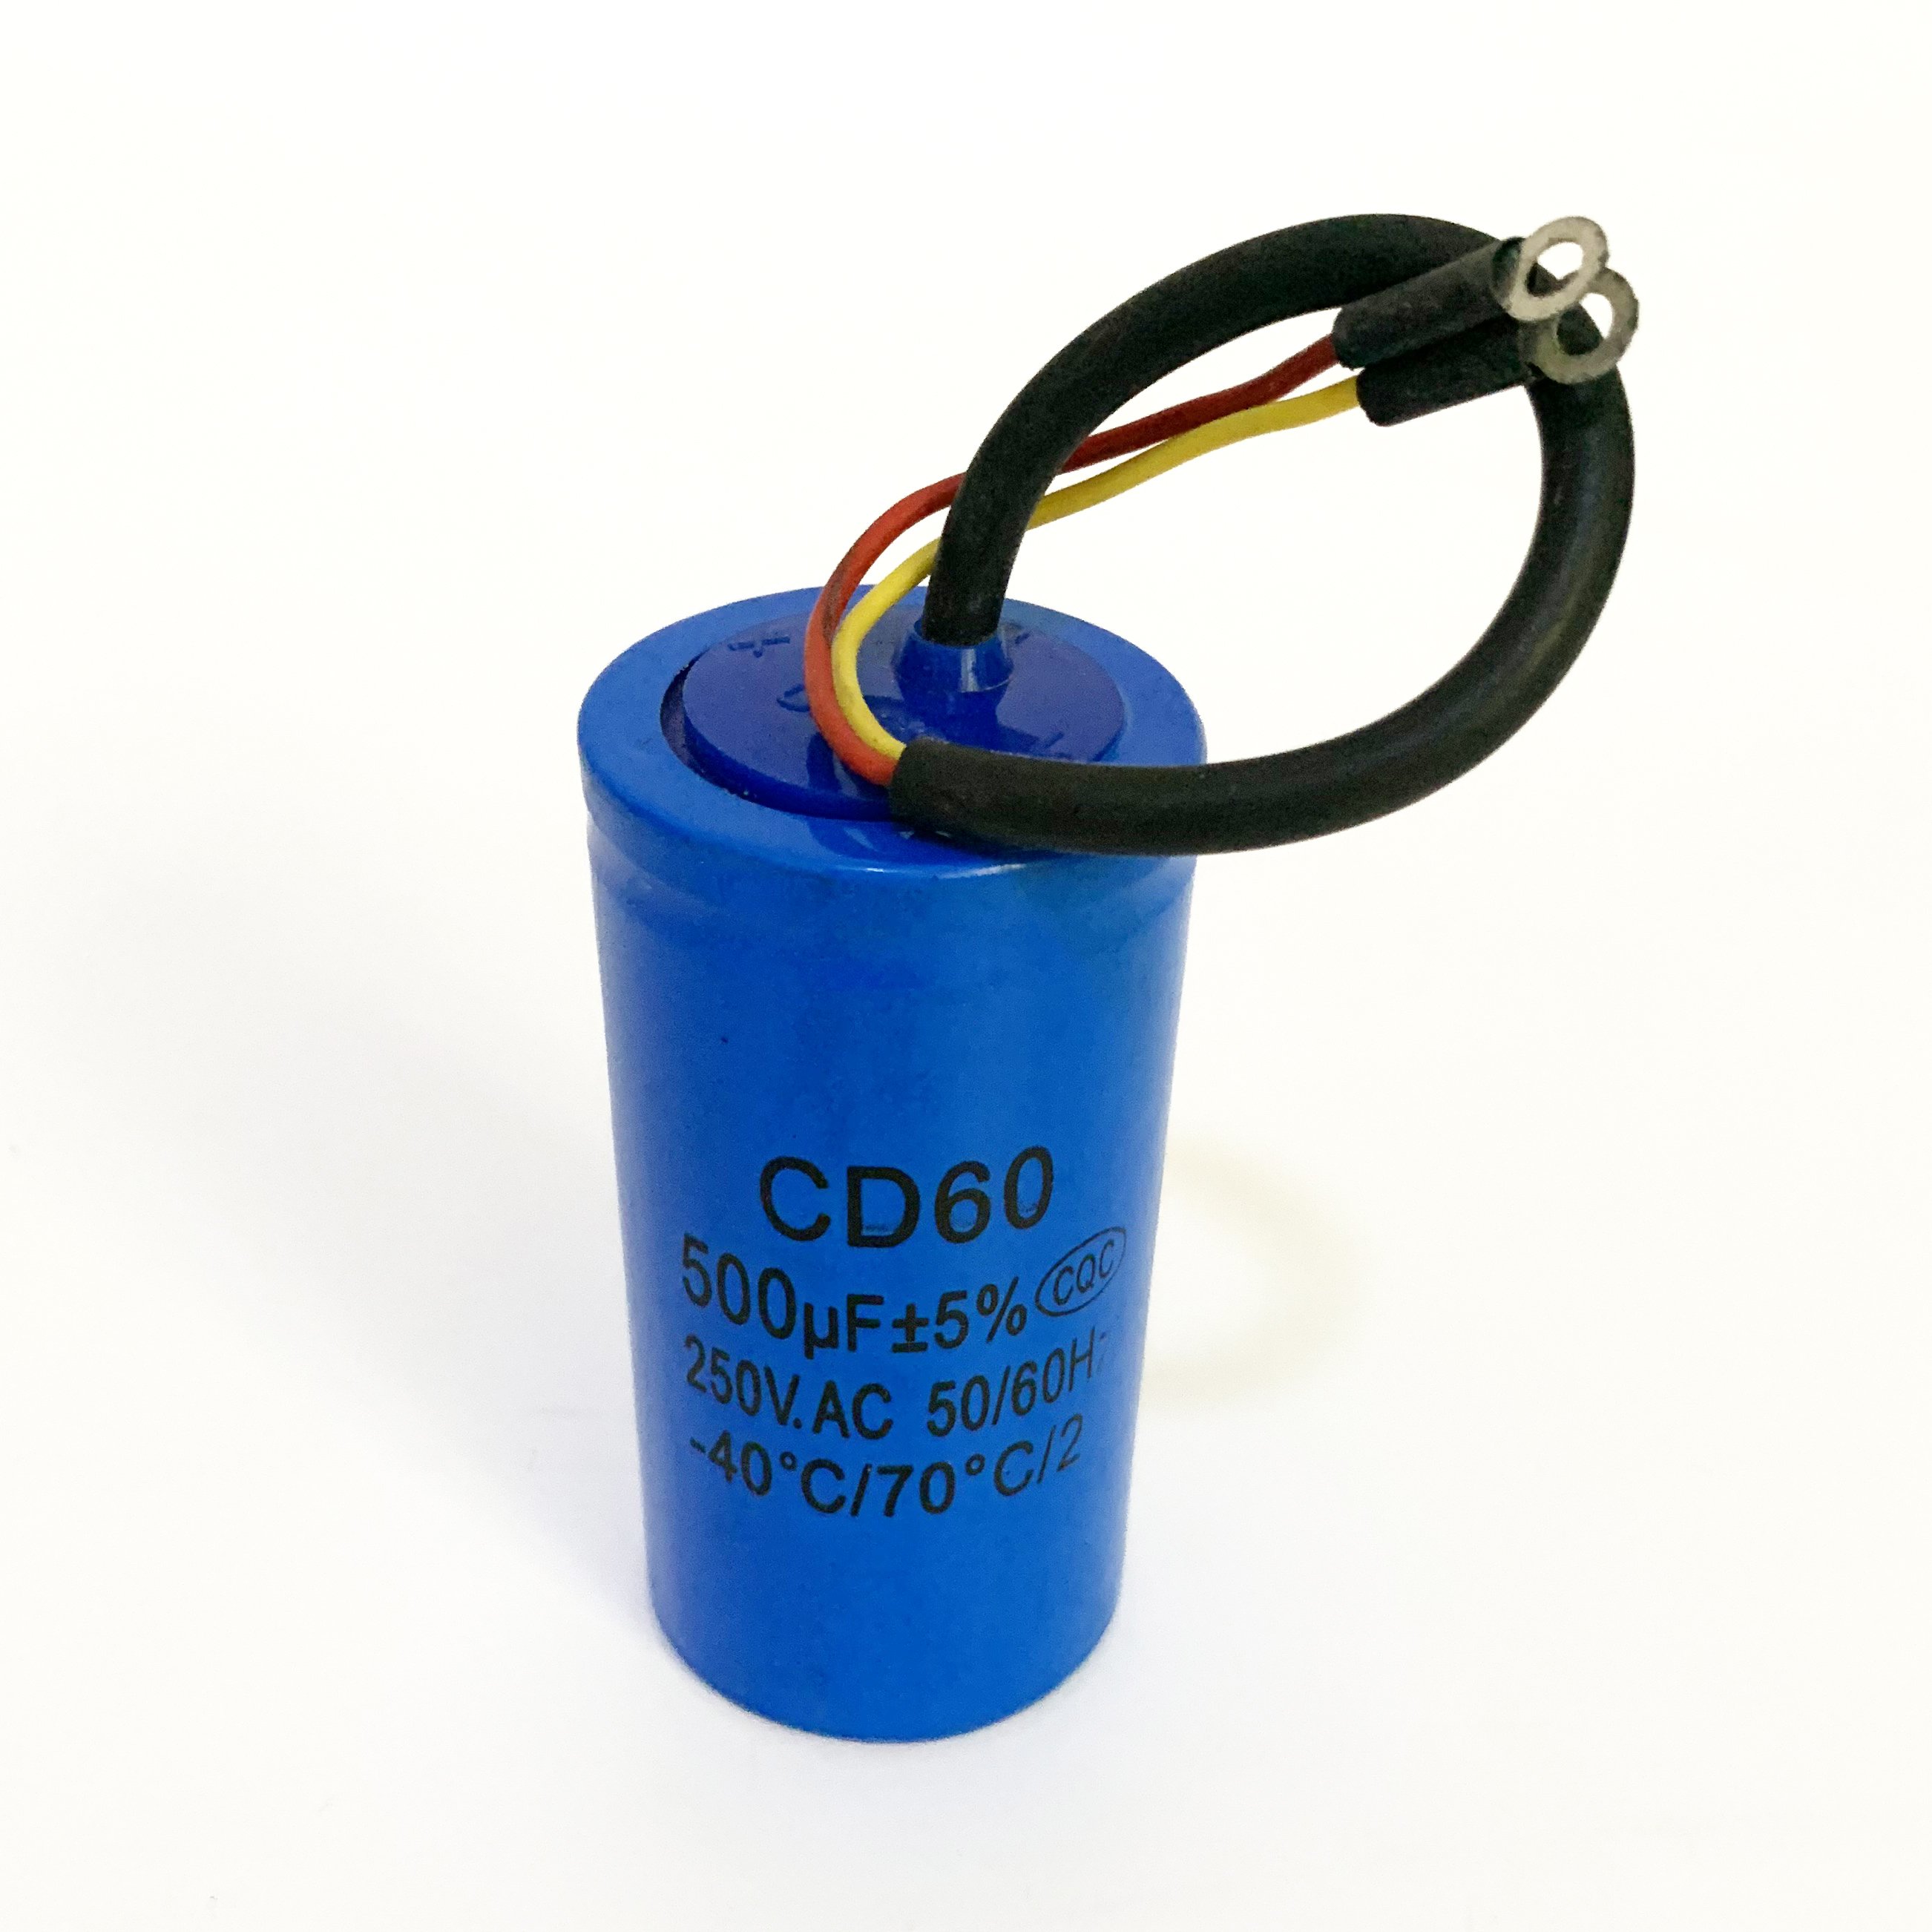 Motor Start Capacitor CD60 Capacitor,250V AC 600uF Appliance Motor Start Run Capacitor with Wire Lead for Motor Air Compressor